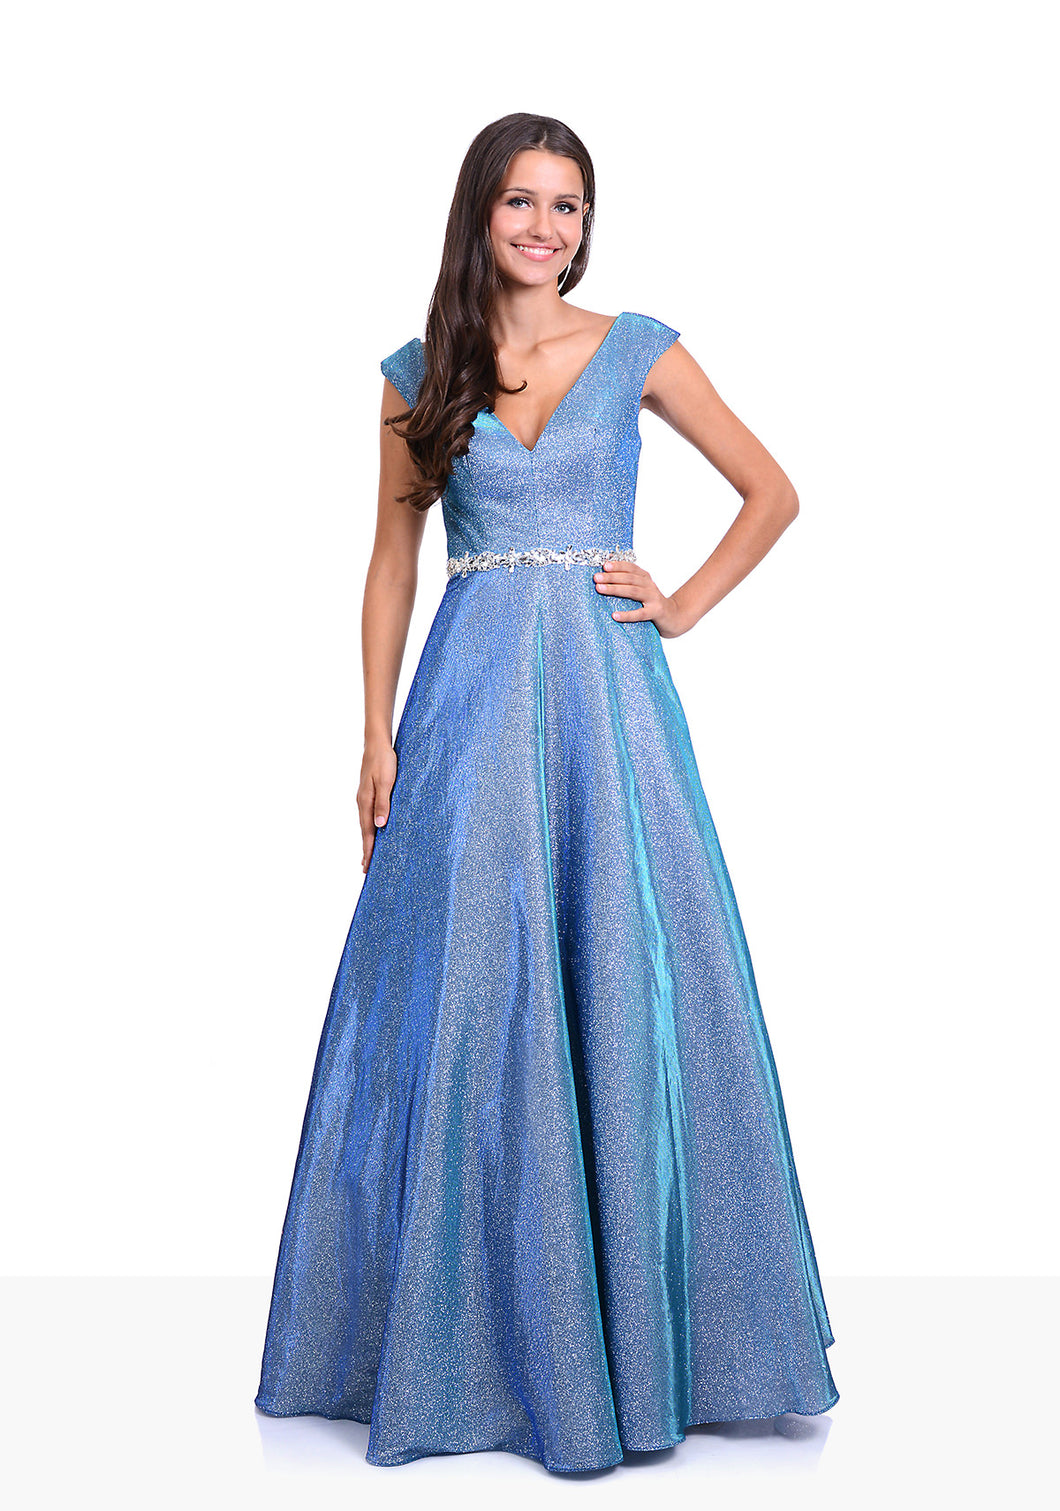 Glitter blue ball gown with diamante waist band. Full skirt glitter dress perfect for prom or an evening gown.